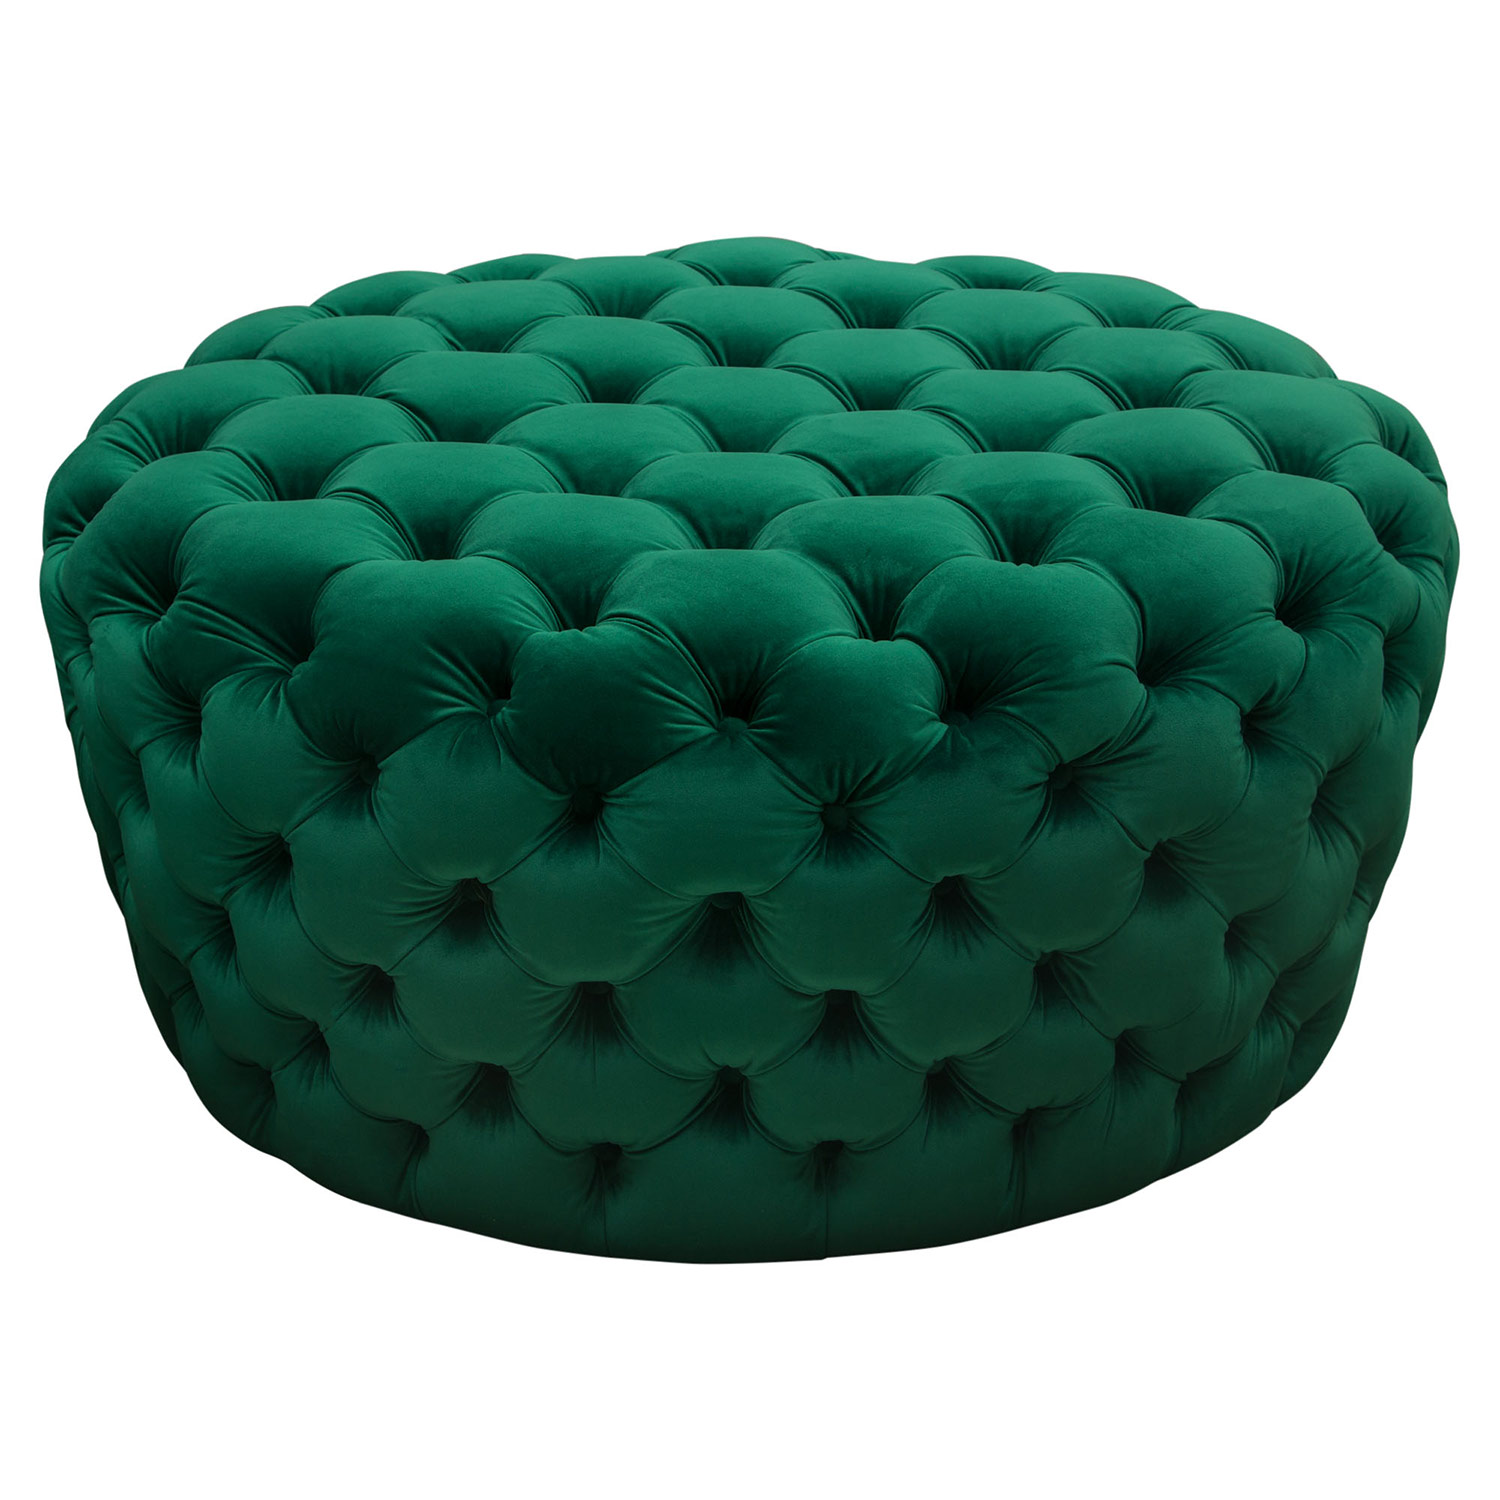 Stupendous Posh All Over Tufted Round Ottoman In Emerald Green Velvet By Diamond Sofa Evergreenethics Interior Chair Design Evergreenethicsorg